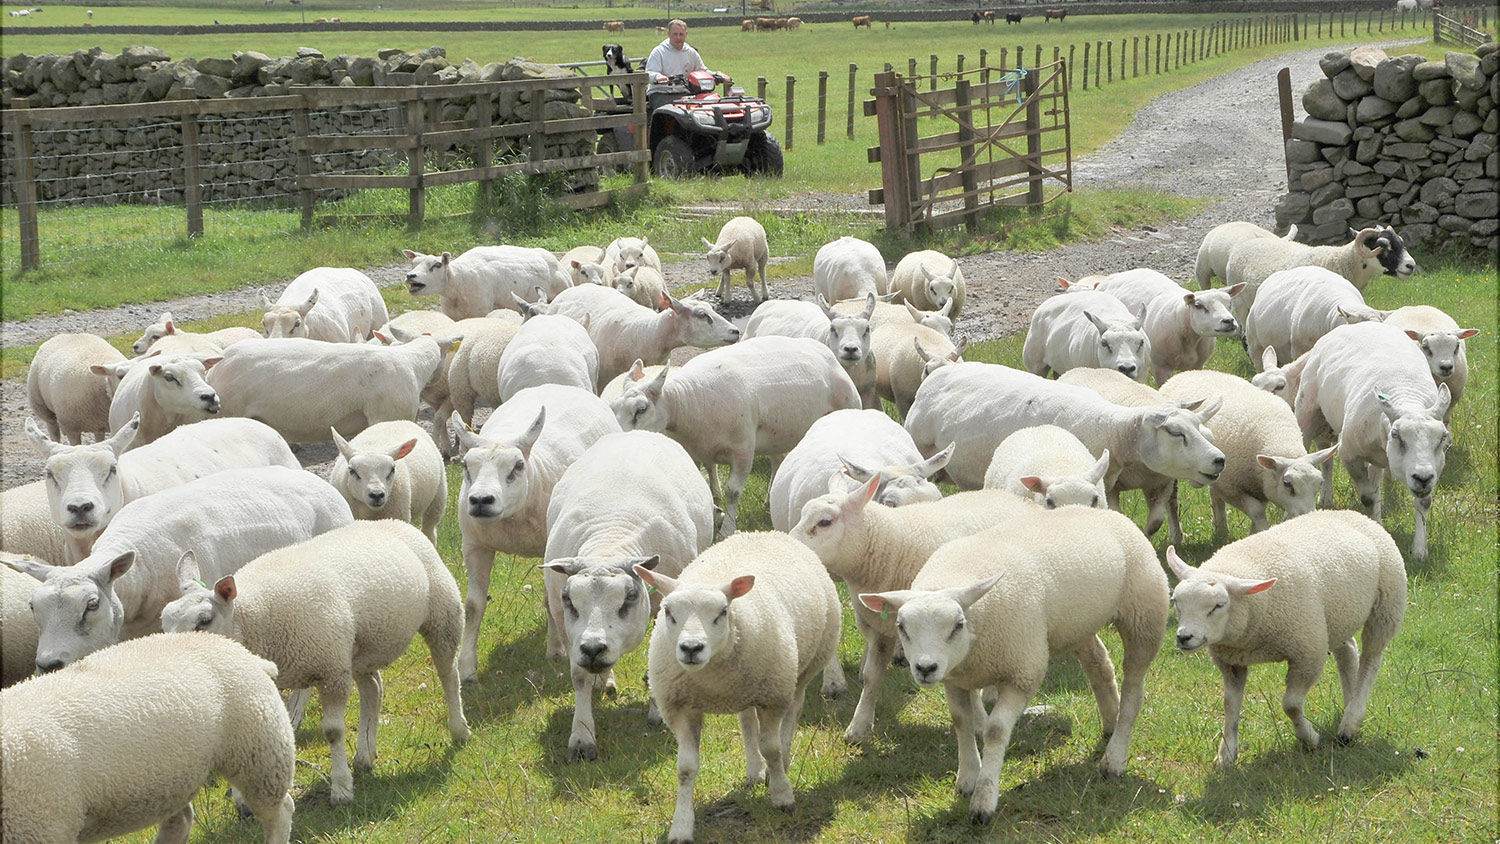 More than 250 sheep stolen from farm in Scotland